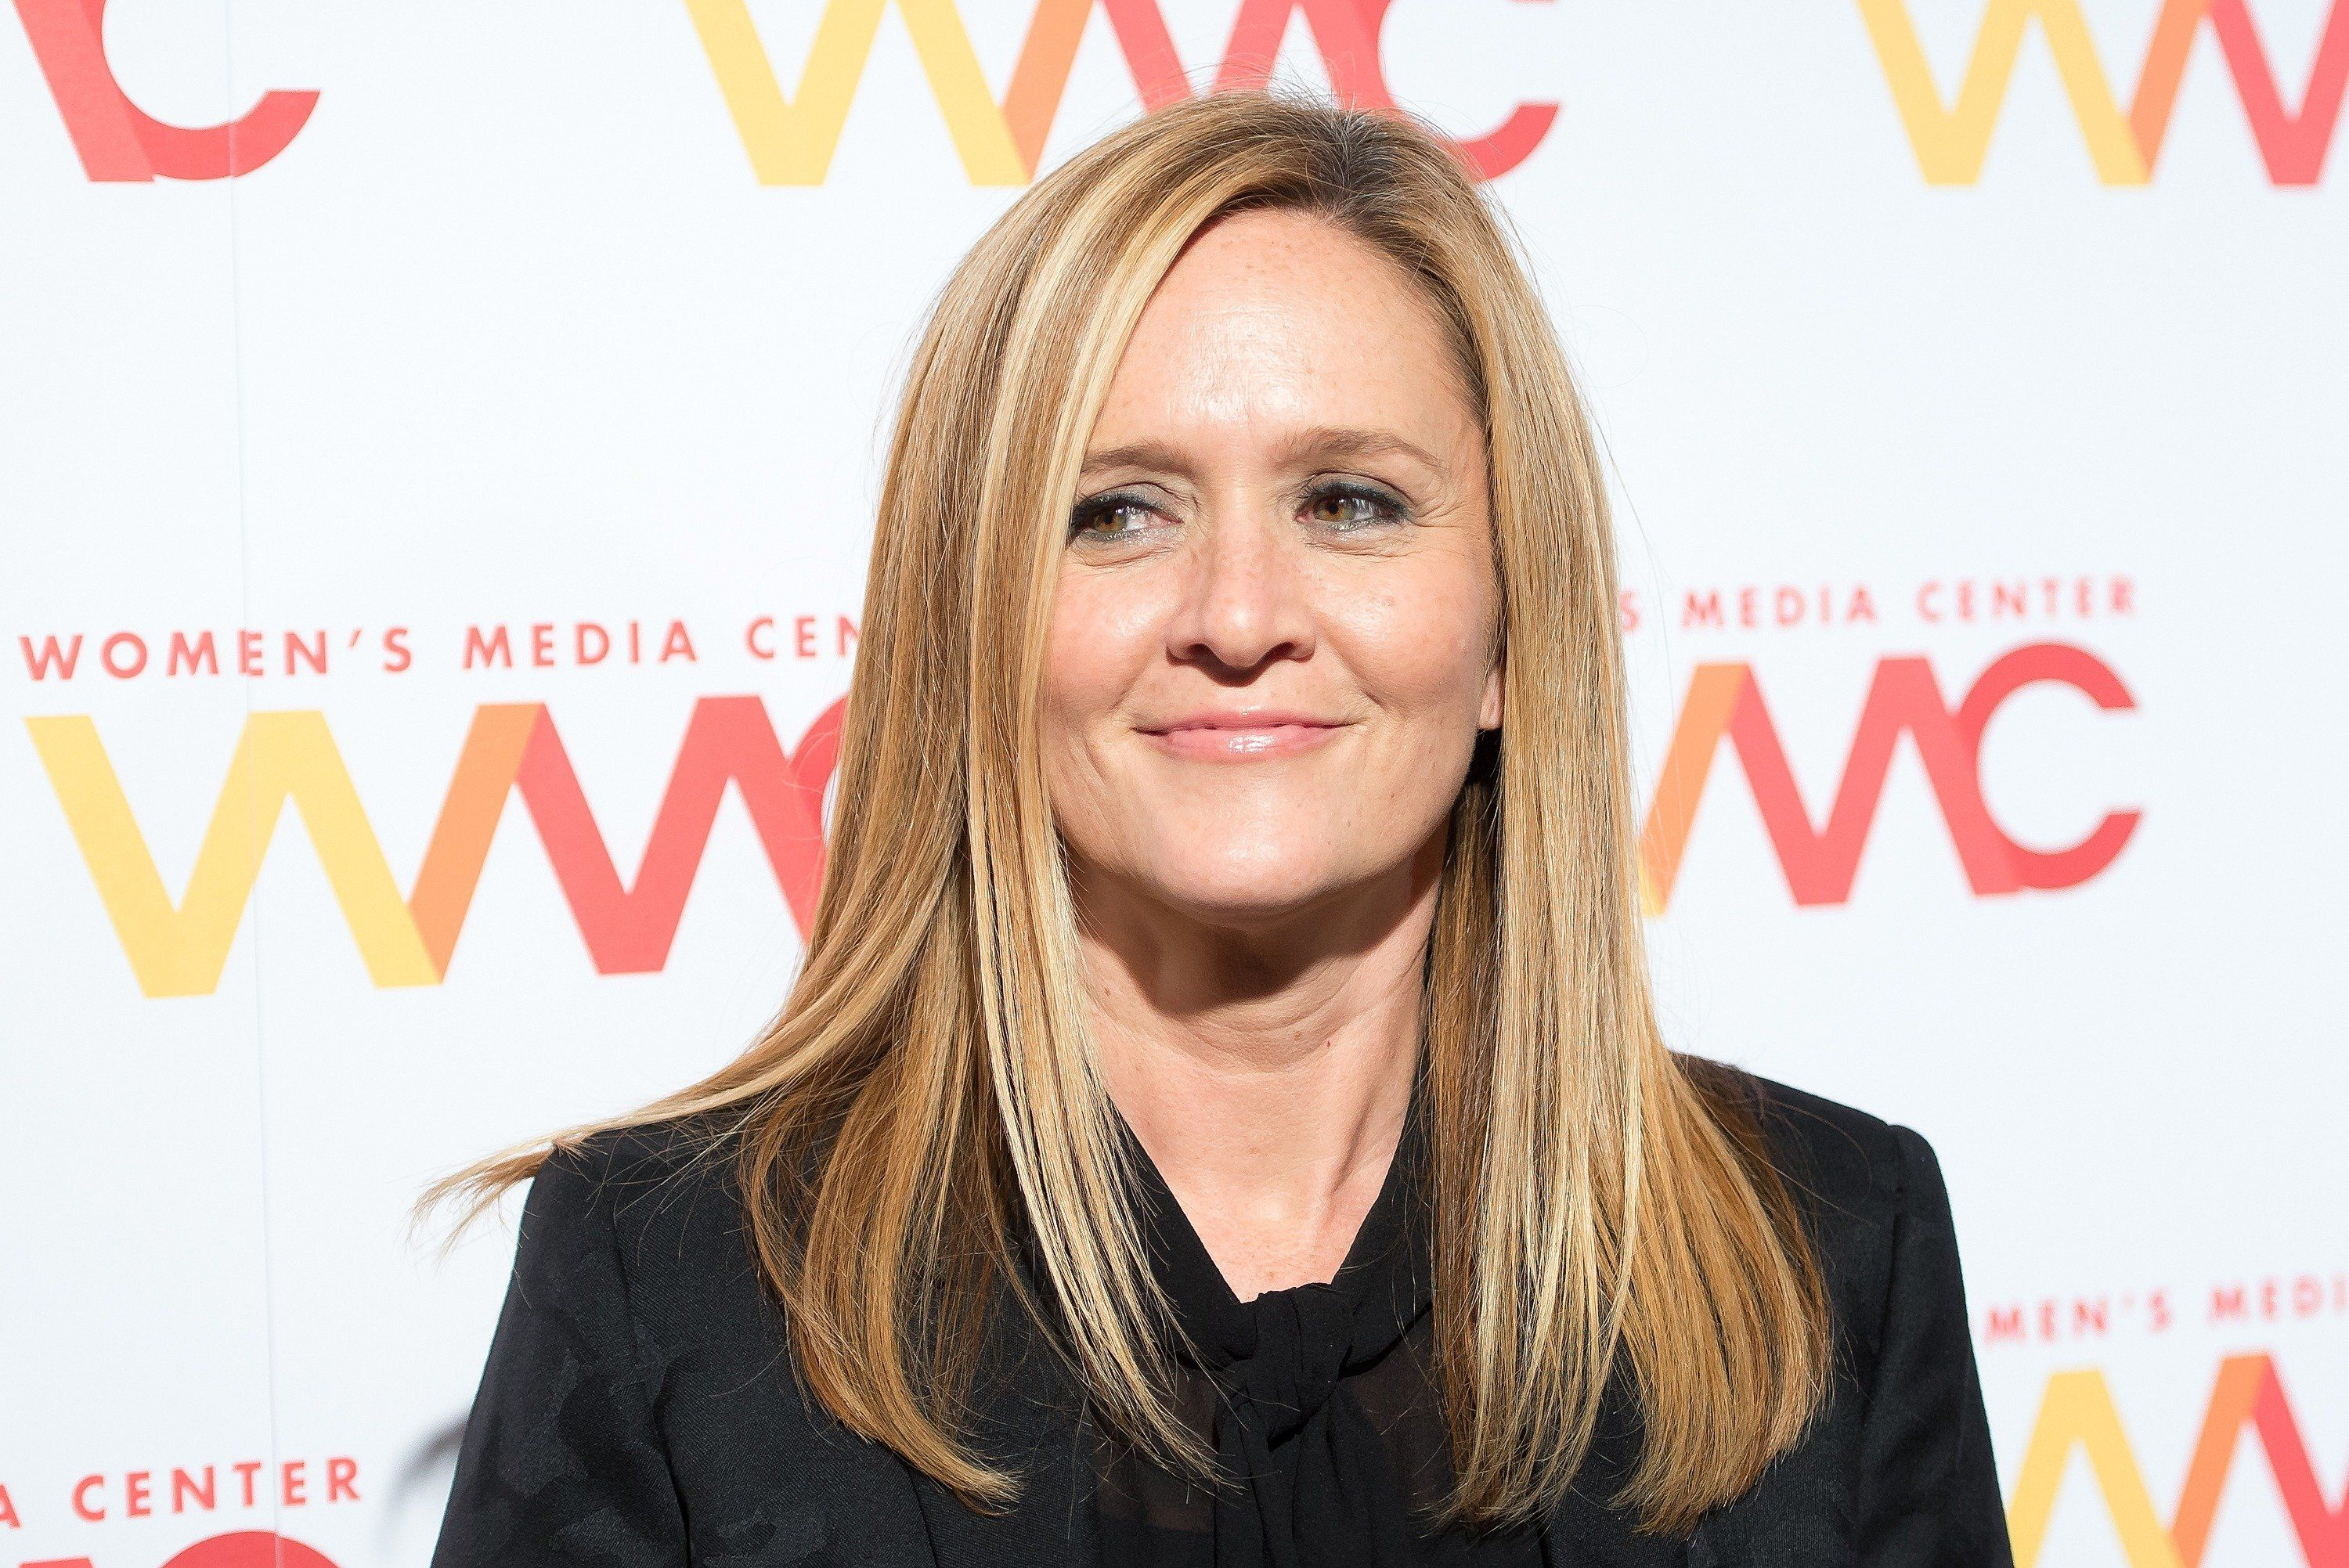 Samantha Bee Tweets Amazing One-Liner About Her Abortion